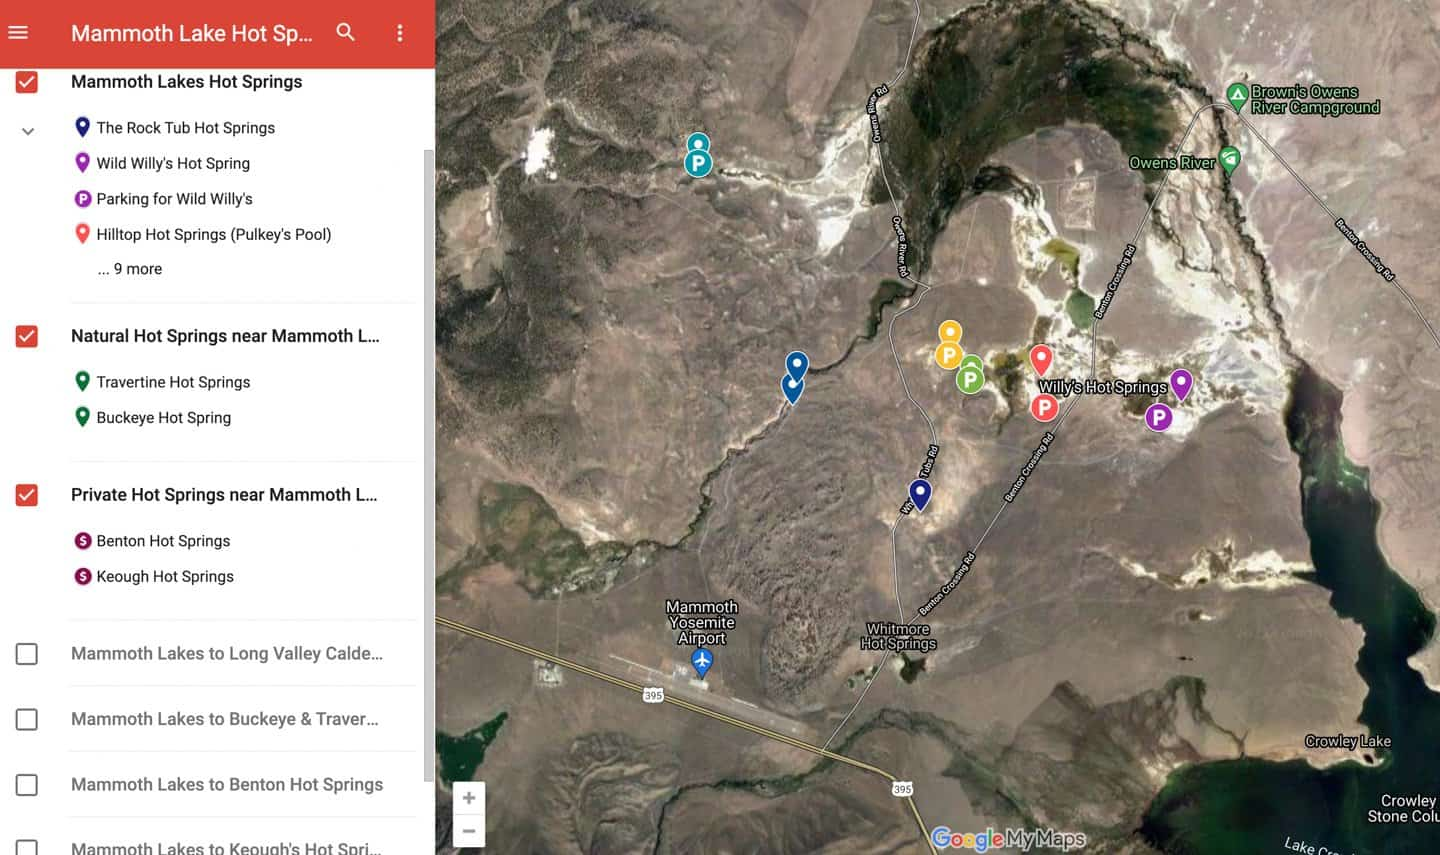 Hot springs in Mammoth Lakes map.